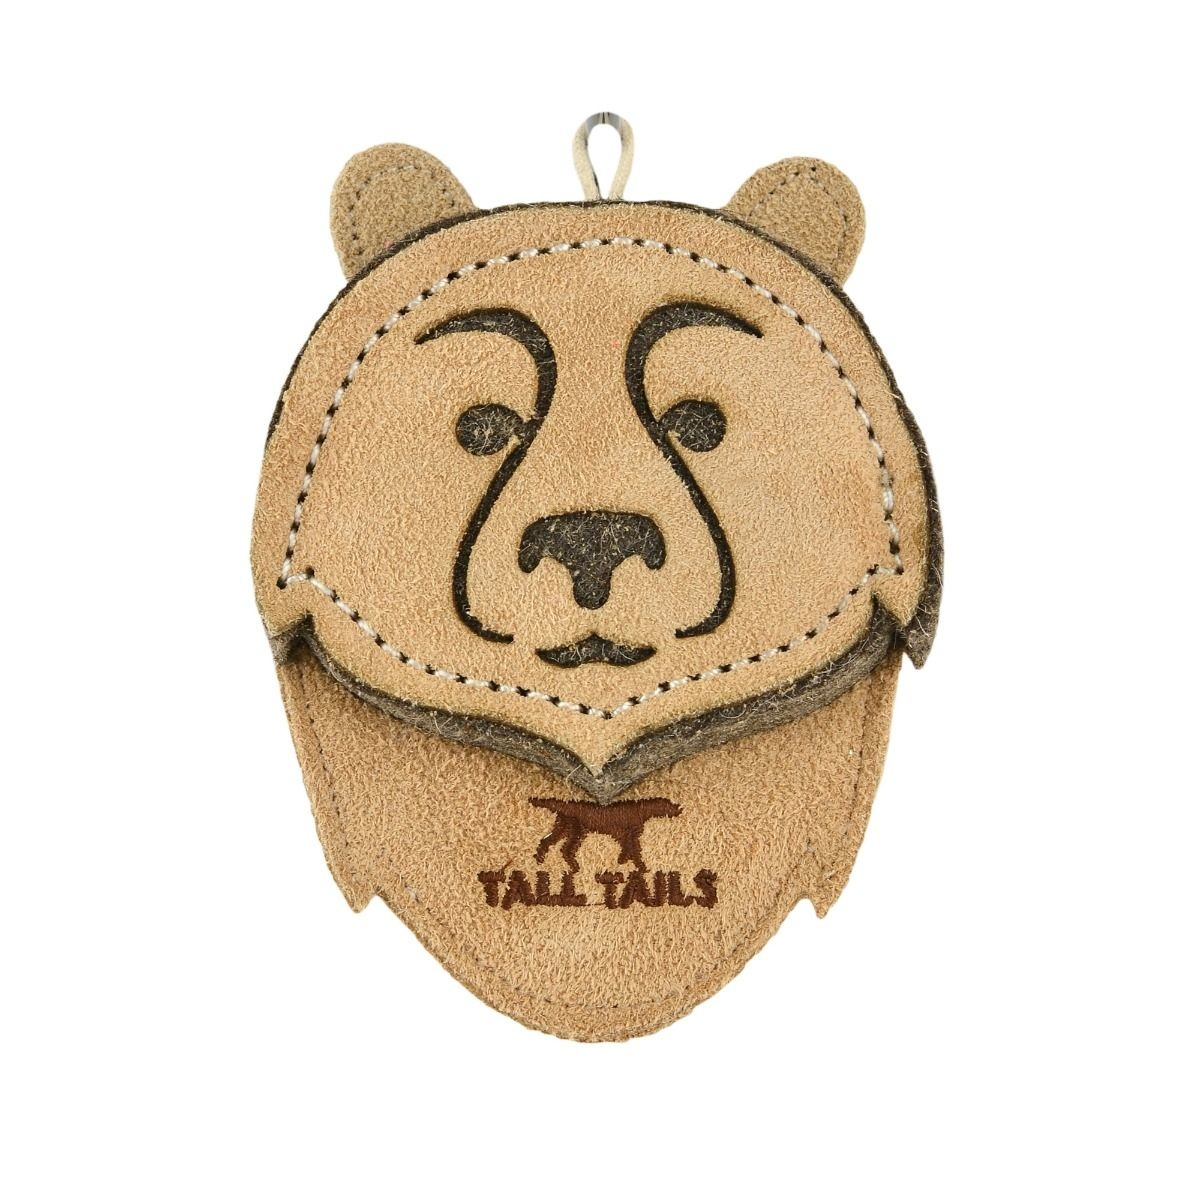 Tall Tails Tall Tails Natural Leather & Wool Scrappy Bear